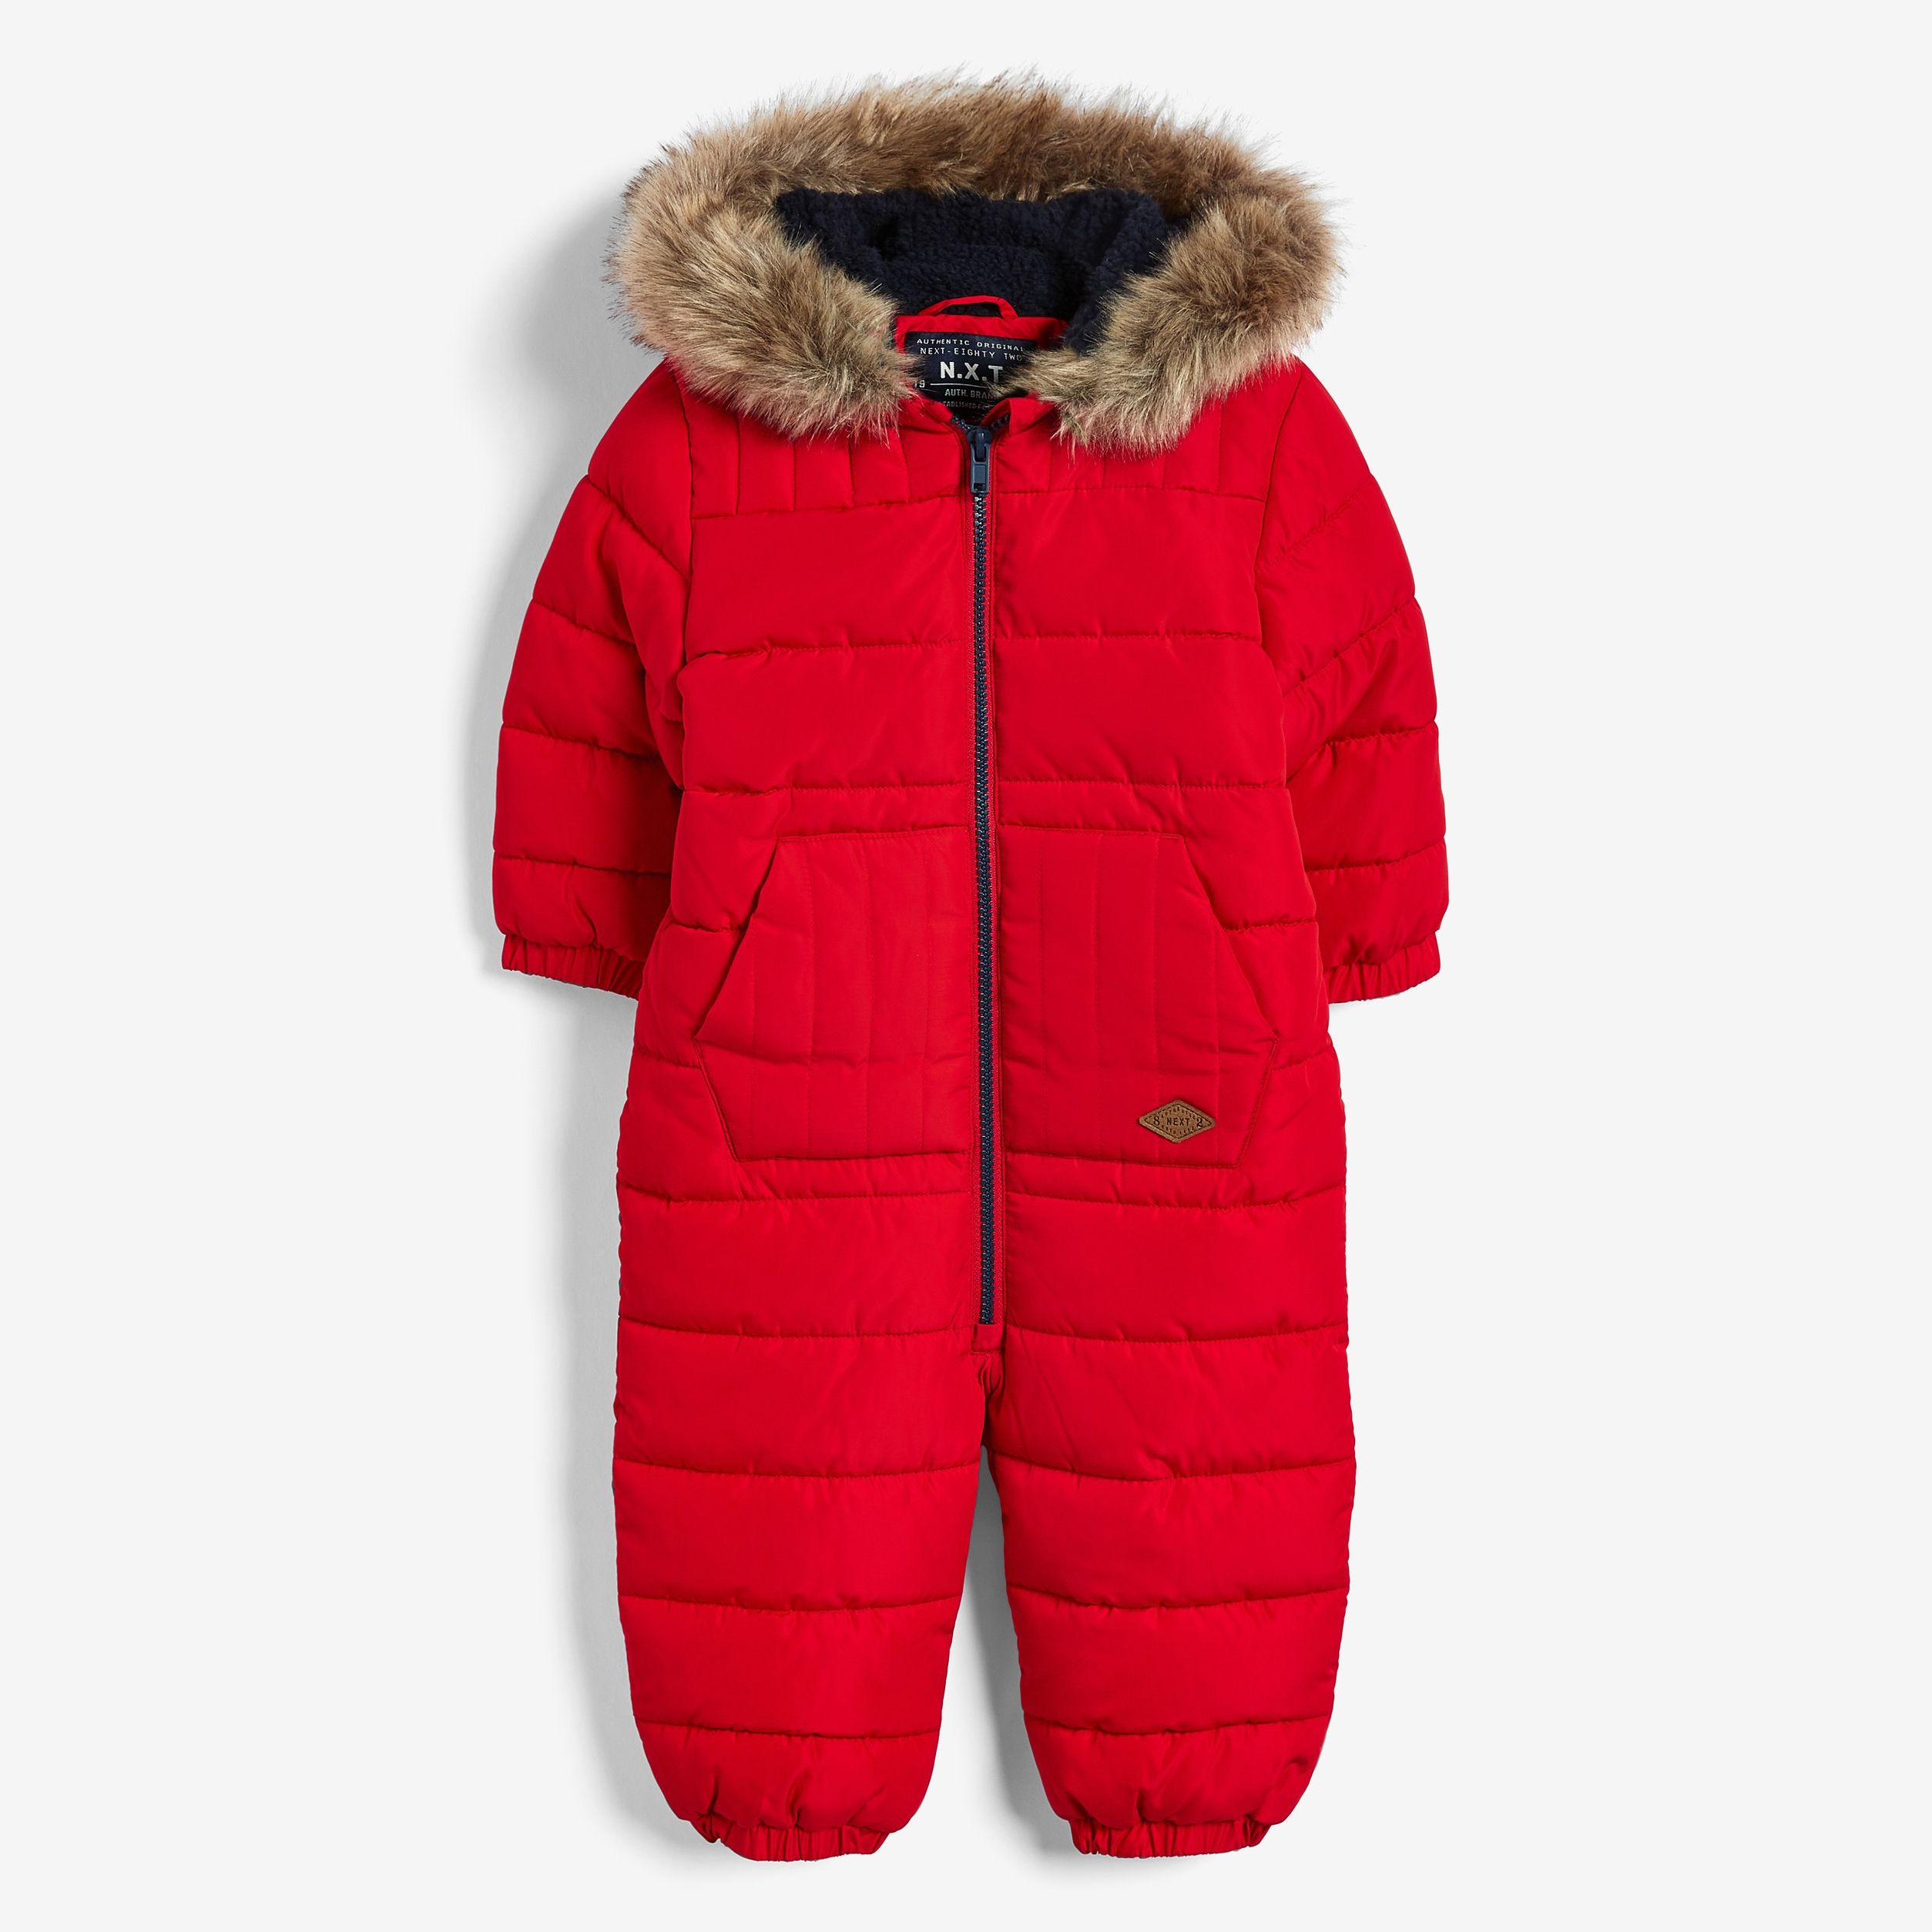 Next Multi Chevron Snowsuit